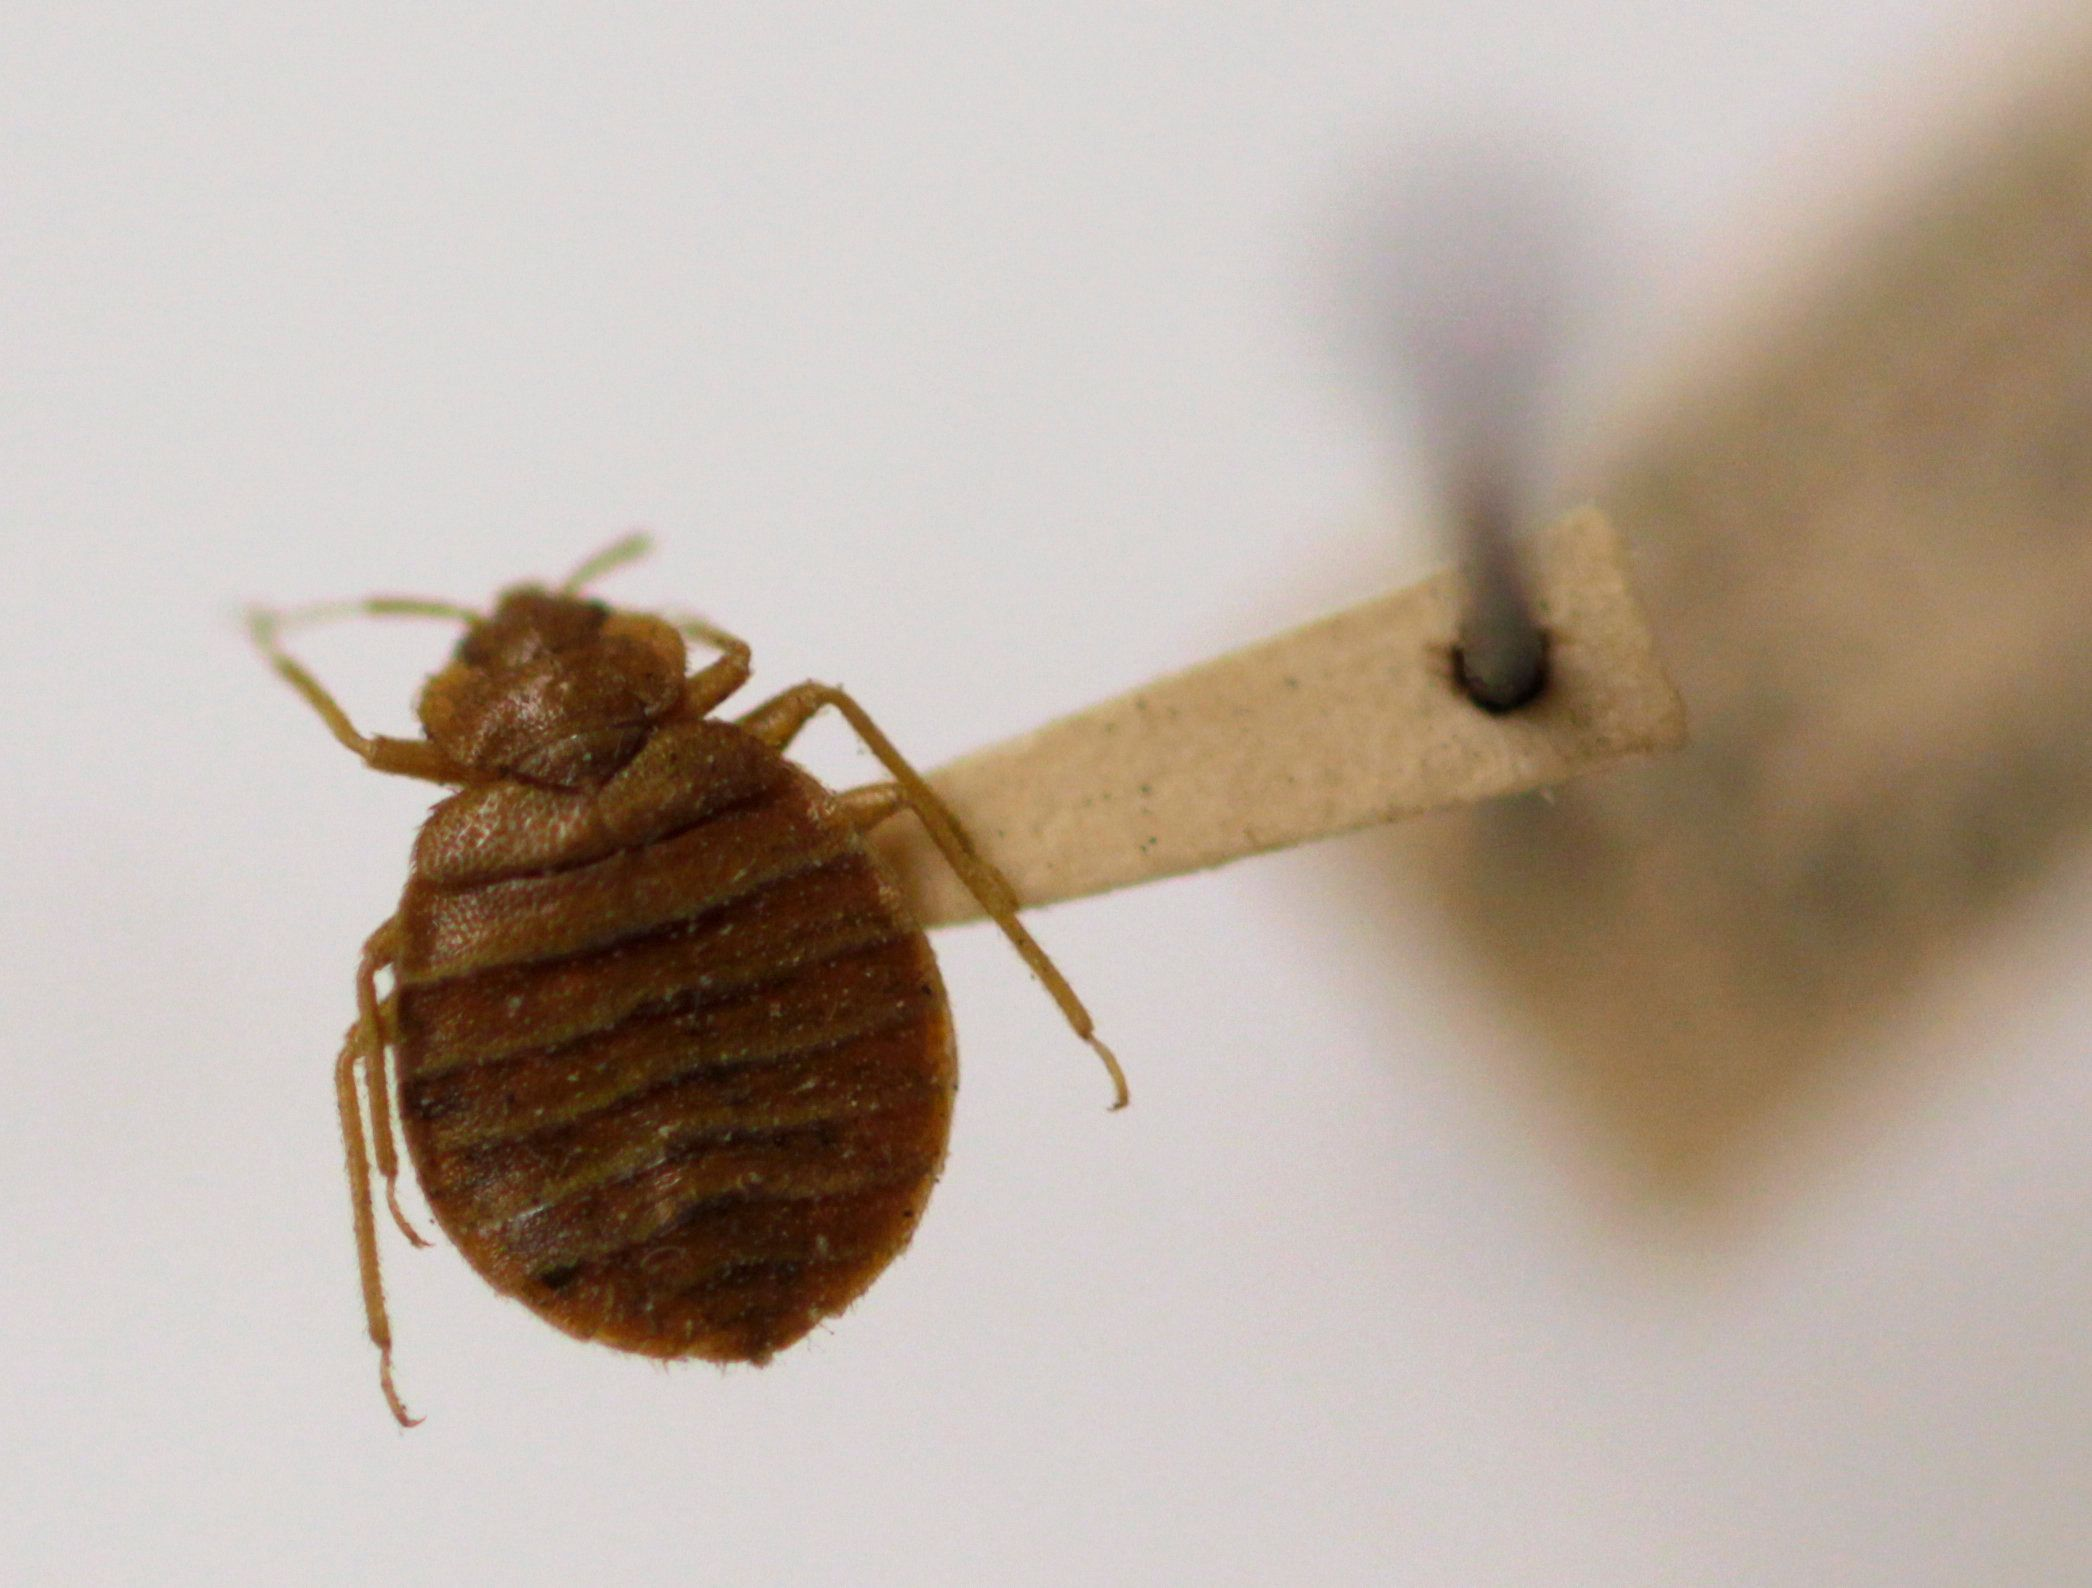 A bed bug is displayed at the Smithsonian Institution National Museum of Natural History, Wednesday, March 30, 2011, in Washington. Spring brings people back outside just as the mosquitoes, ticks, yellow jackets and other bugs emerge to bug us. Though some can pose real threats, such as Lyme disease or life-threatening allergic reactions, most of the time bug bites in this country are just an itchy nuisance. (AP Photo/Carolyn Kaster)